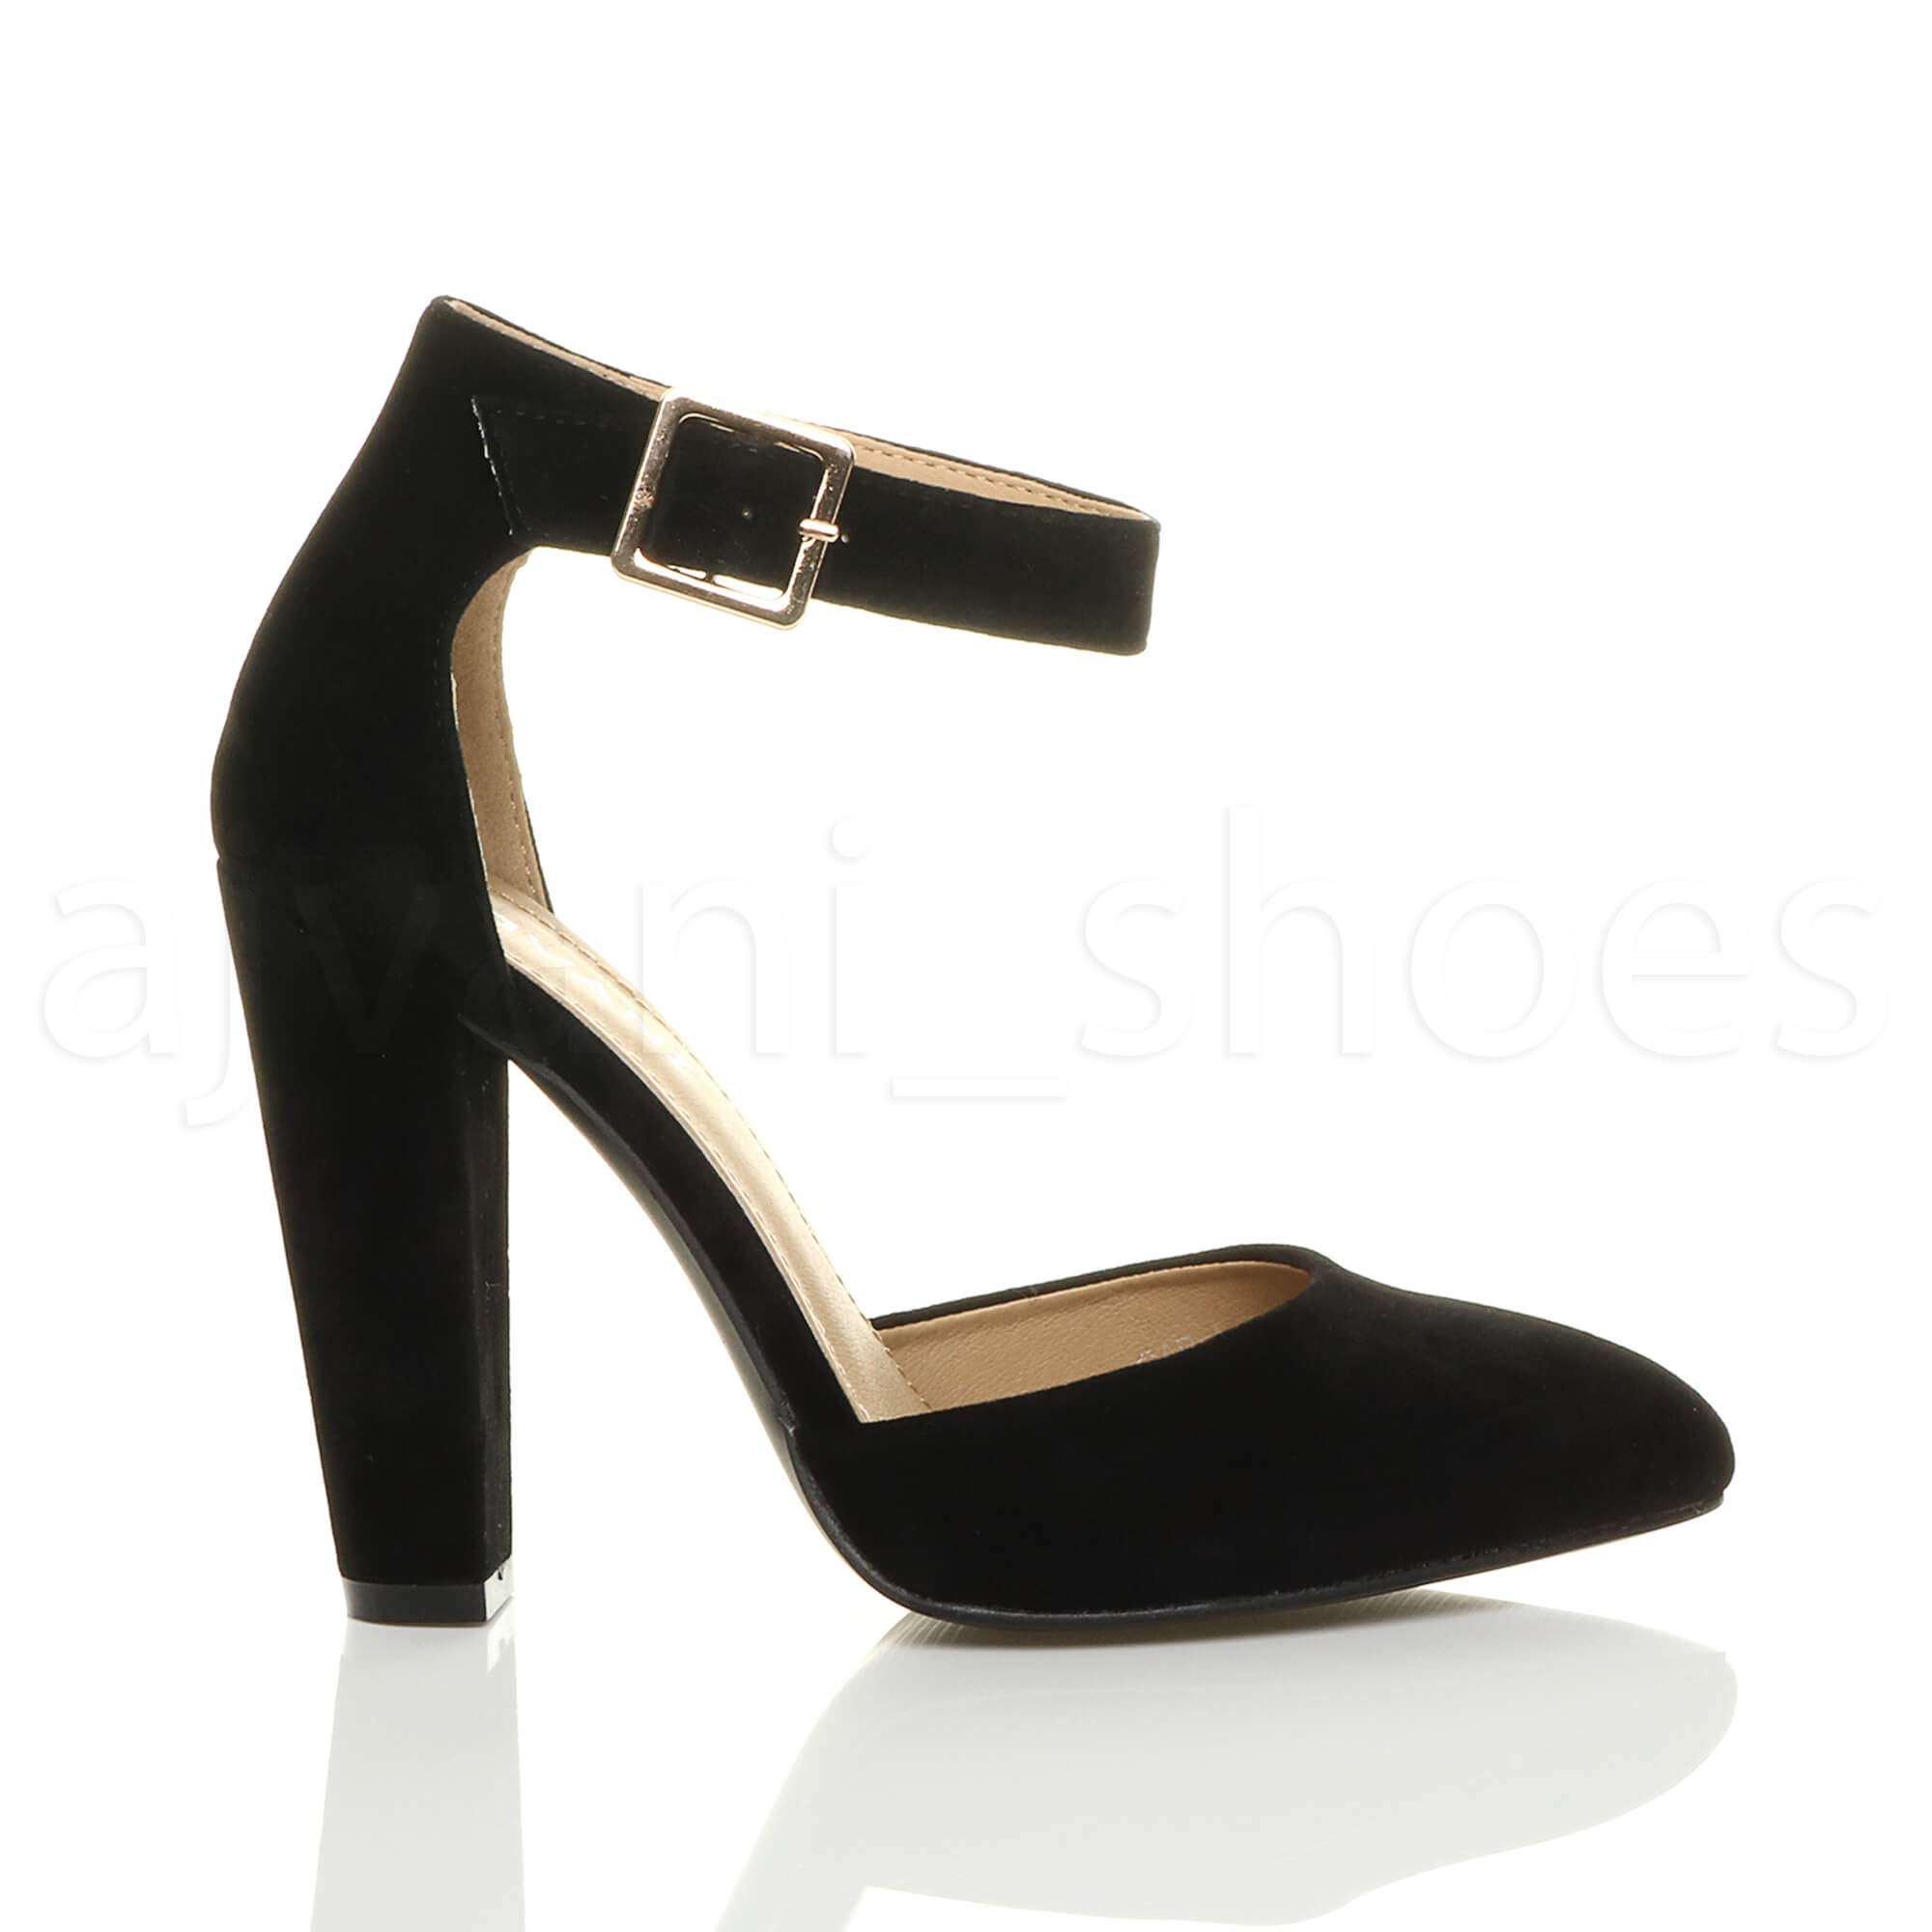 WOMENS-LADIES-HIGH-BLOCK-HEEL-ANKLE-STRAP-BUCKLE-POINTED-COURT-SHOES-SIZE thumbnail 17